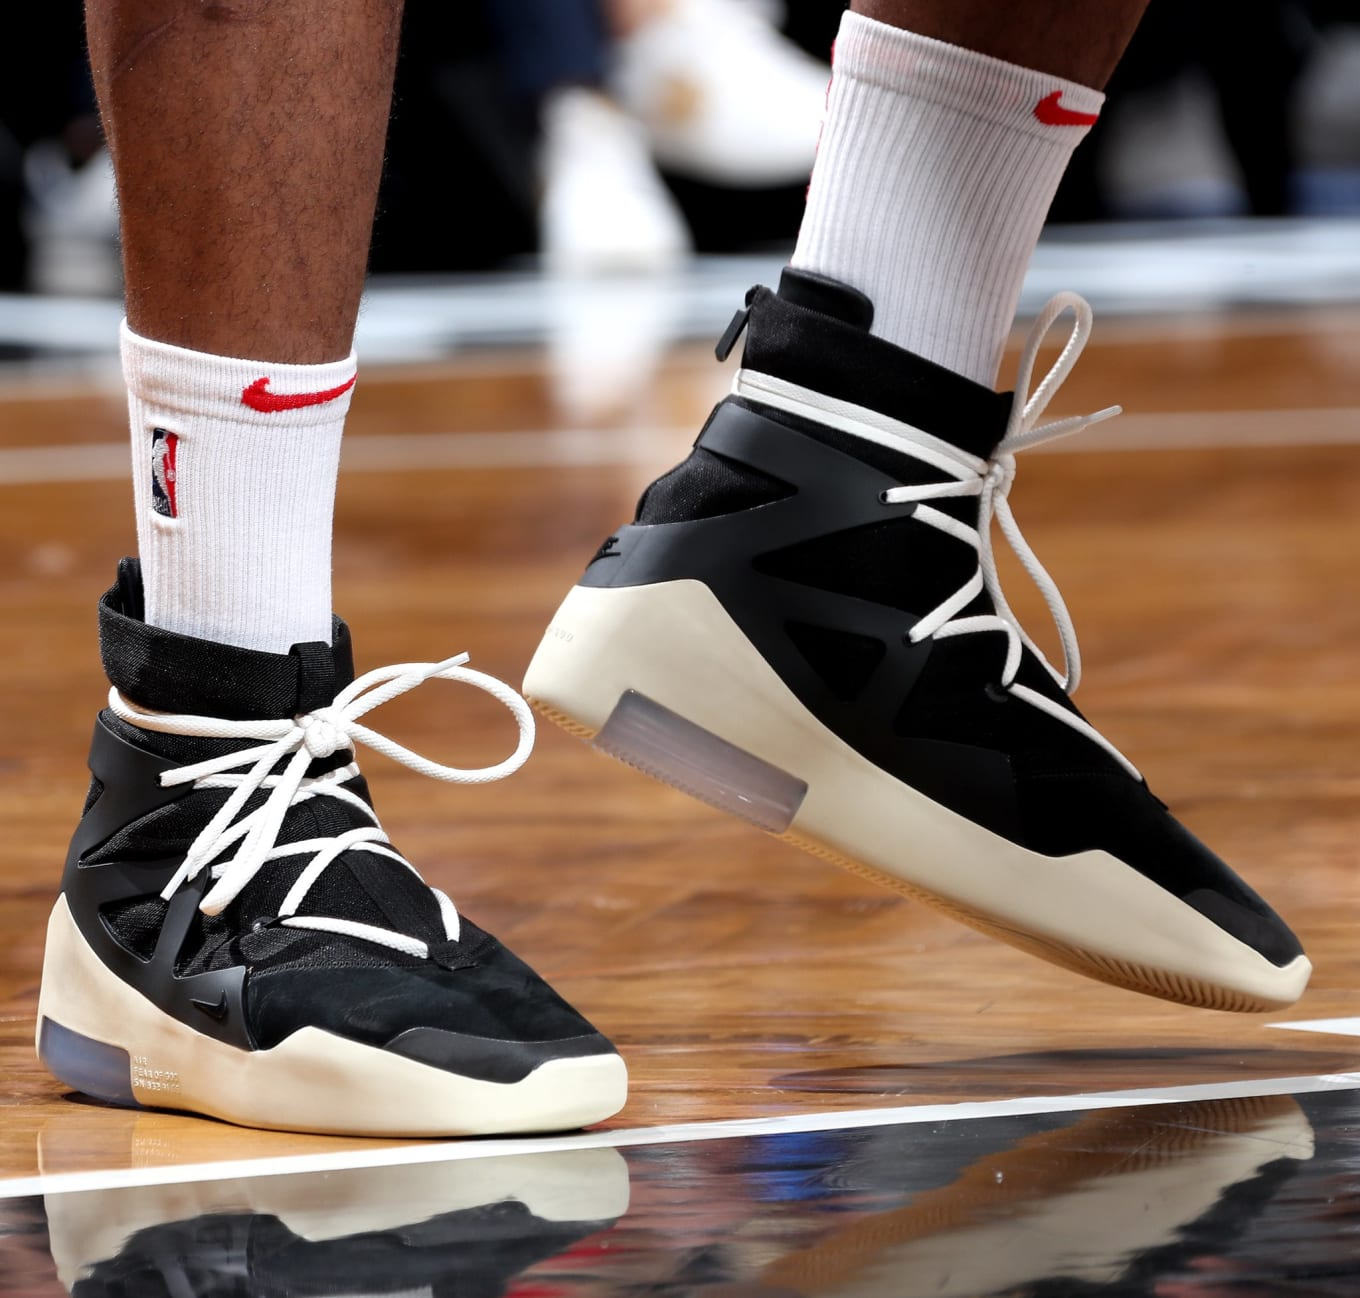 dcd43f012b6 P.J. Tucker Plays in Jerry Lorenzo s Nike Air Fear of God Collaboration